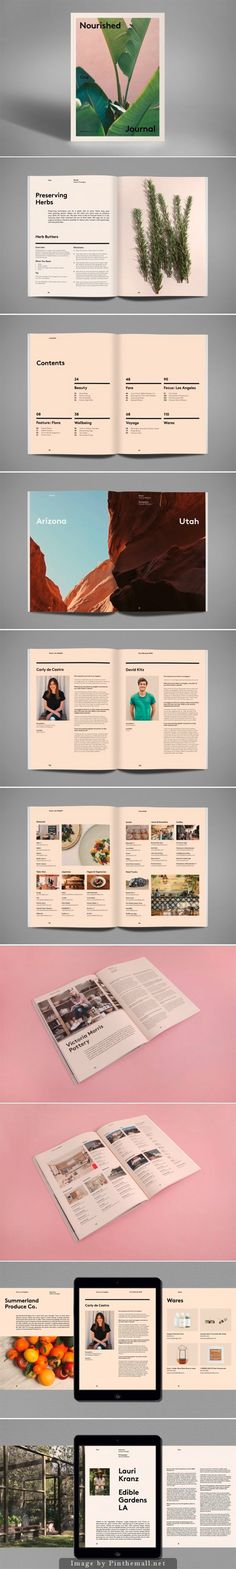 Nourished Journal | Sept. 2014. #graphicdesign #layoutmagazine